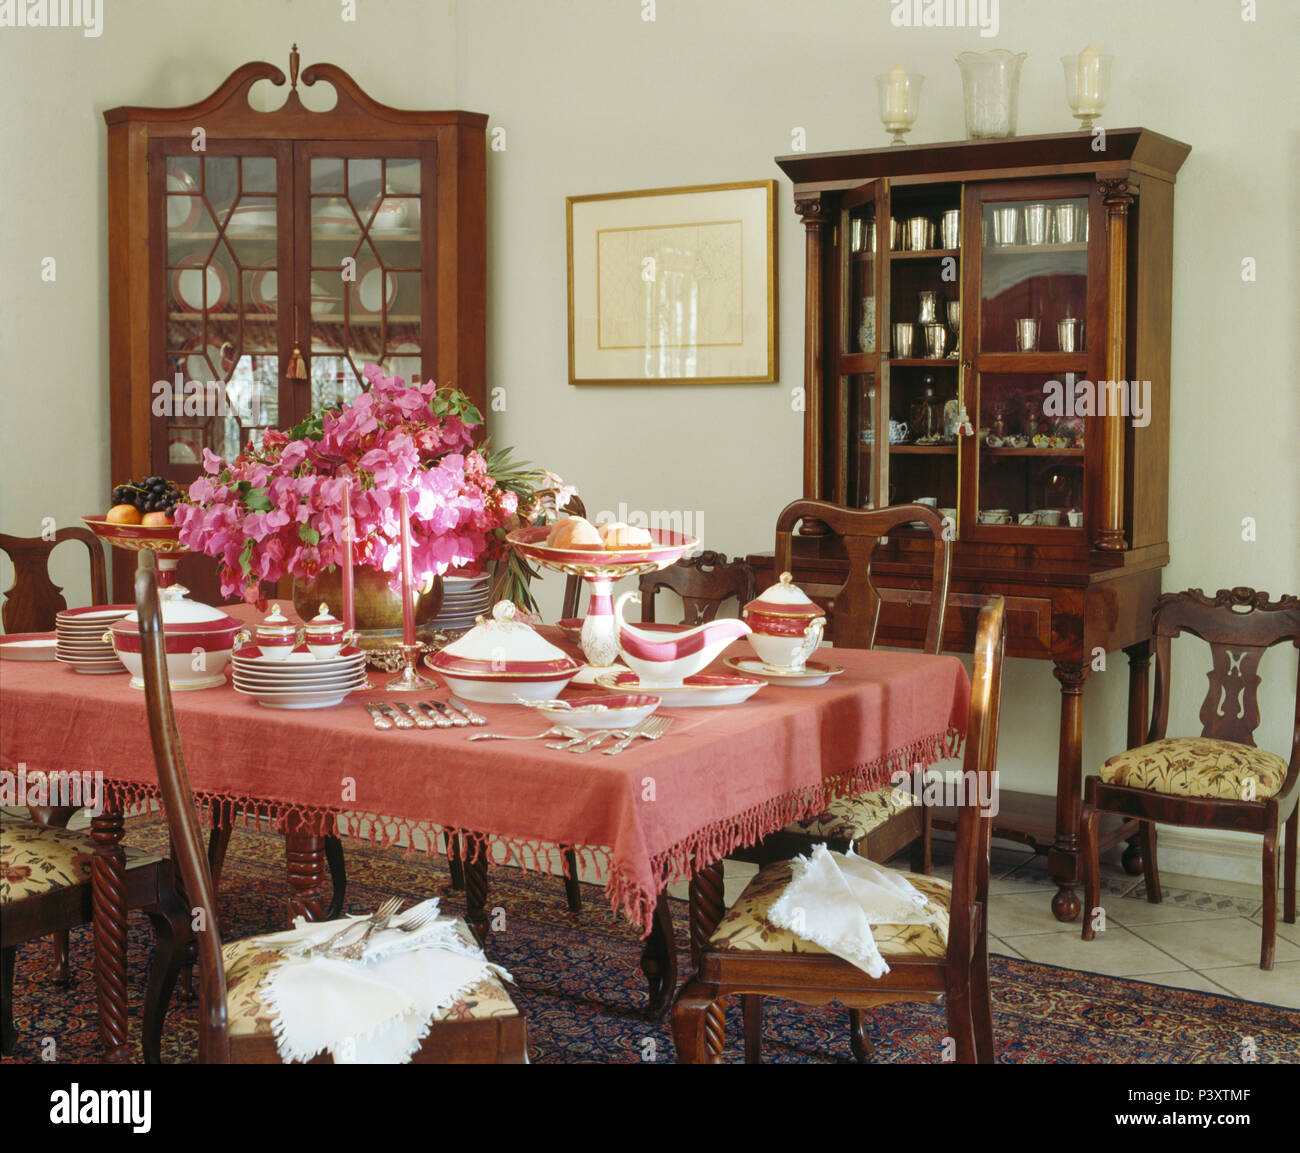 Elegant Vase Of Pink Flowers On Table With Pink Cloth Fset Or Lunch In Traditional  Portuguese Dining